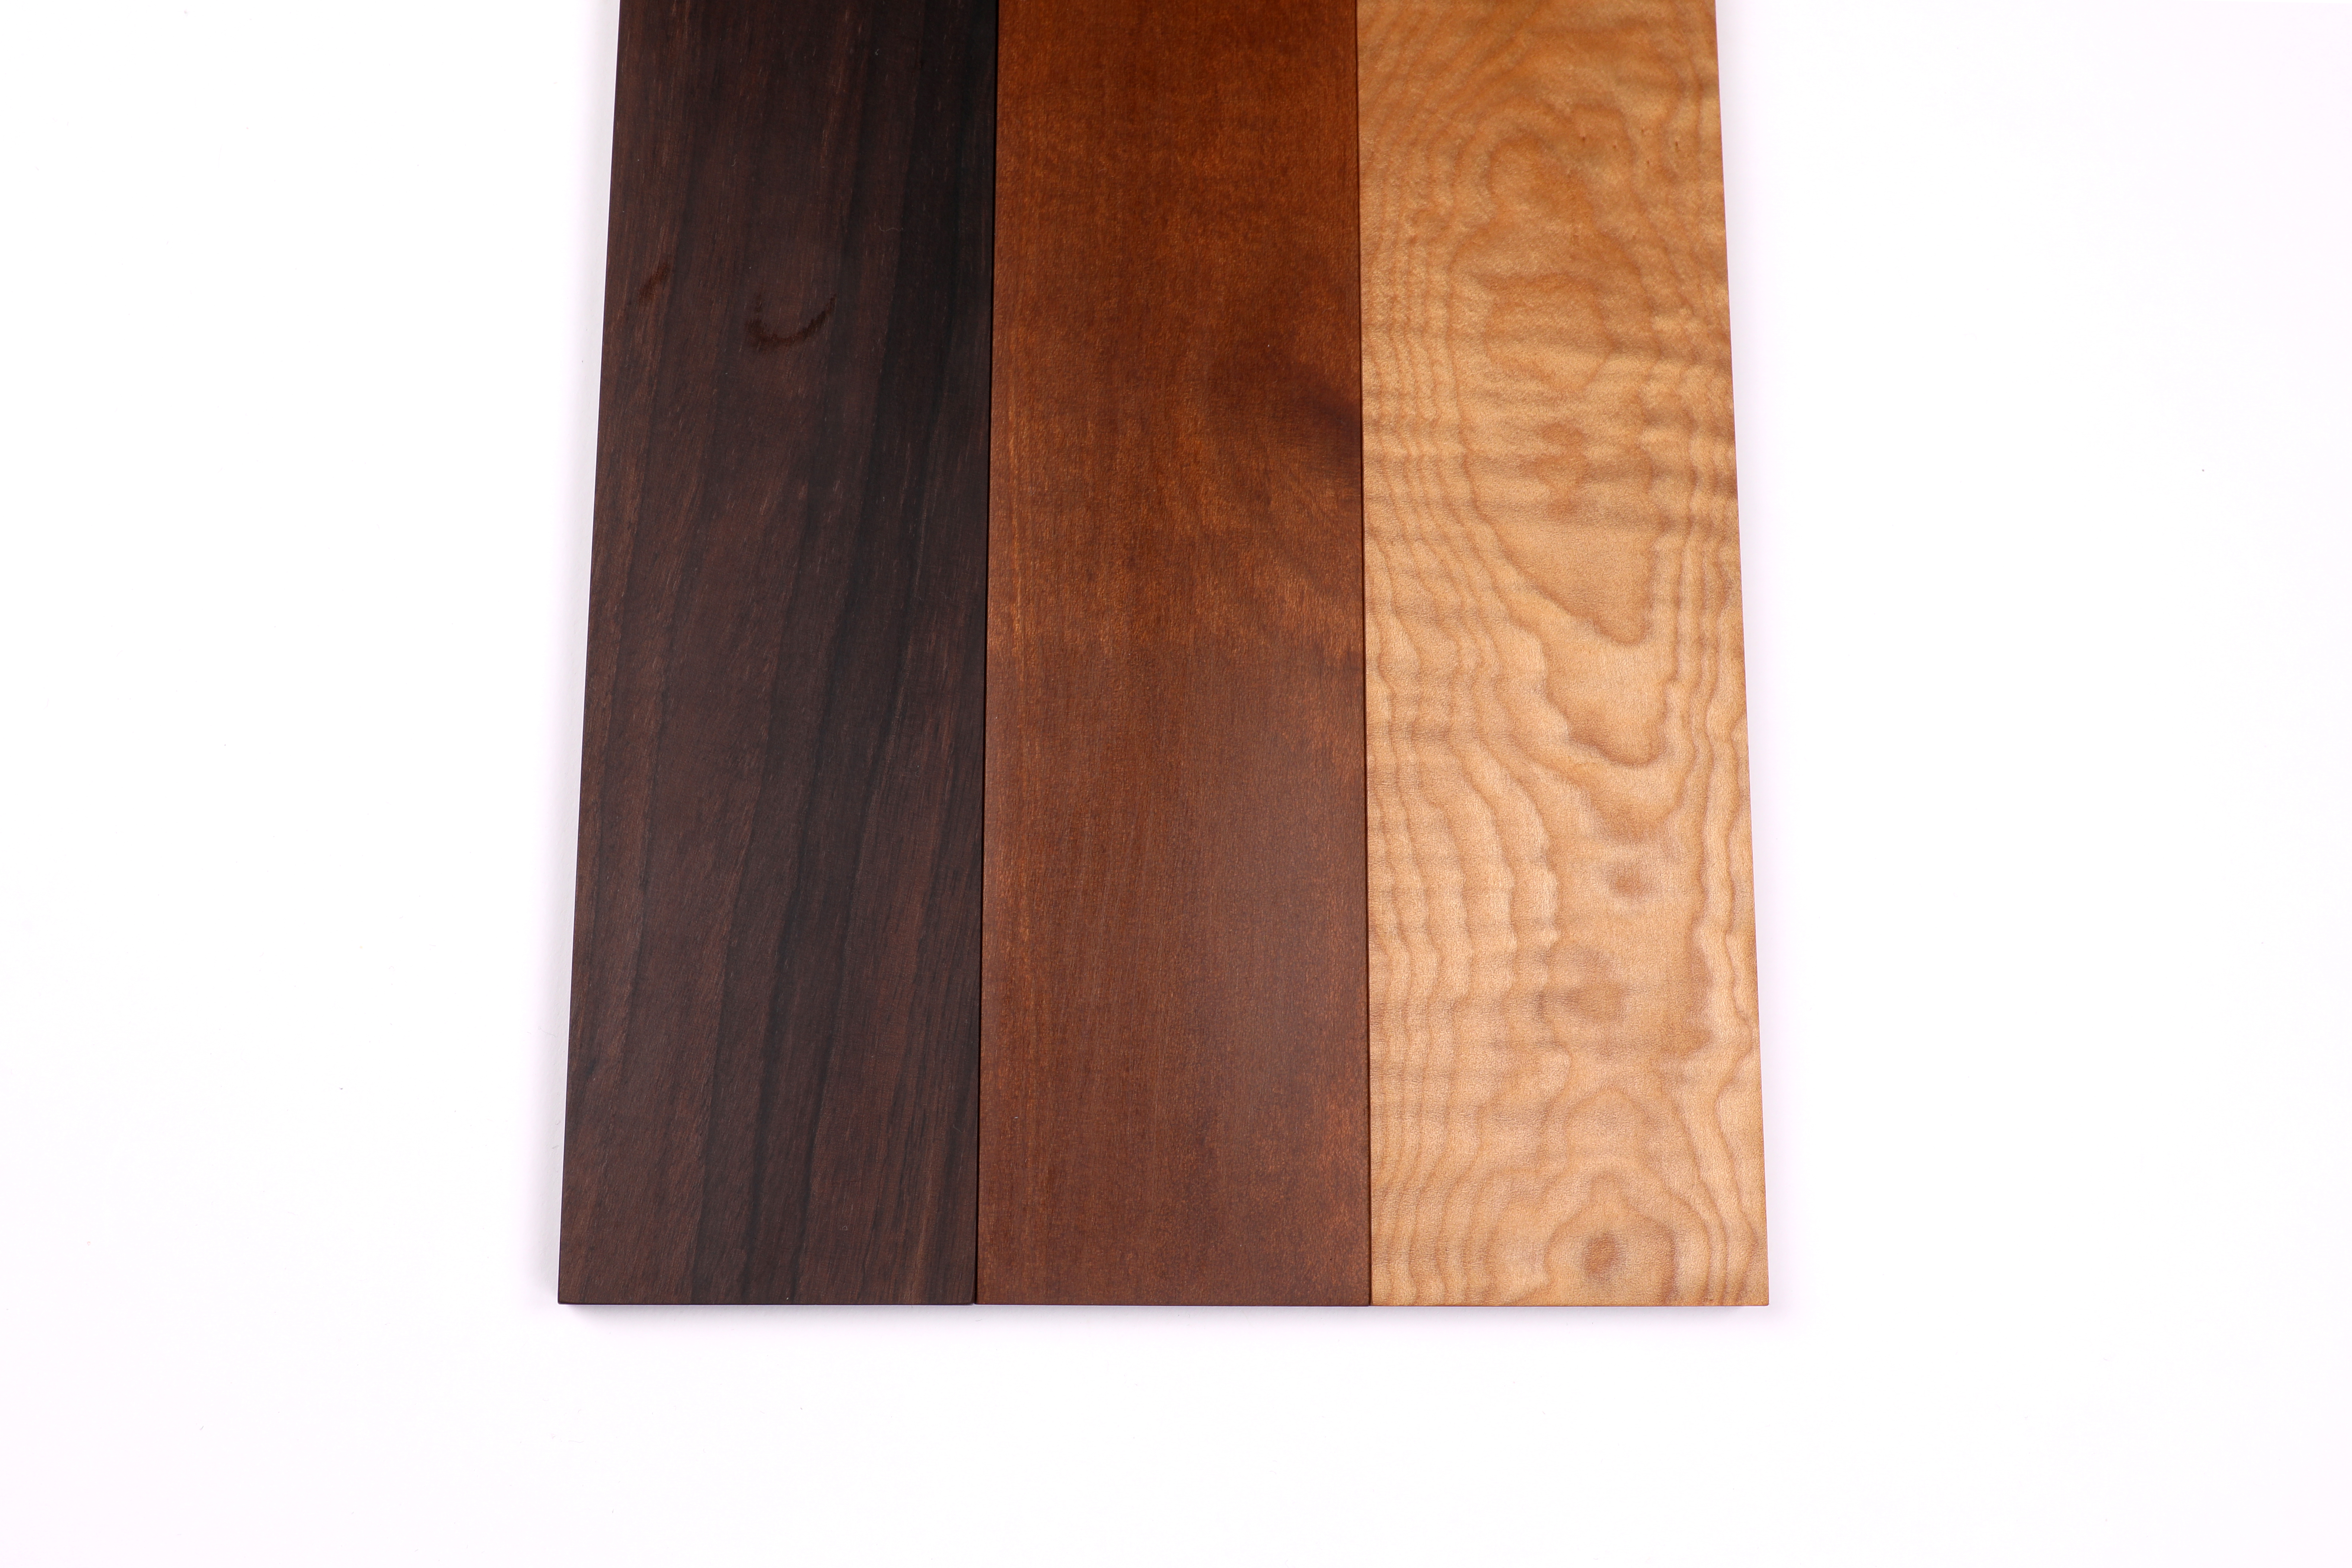 Fretboards from Sonowood walnut (left), maple (center) and flamed maple (right)